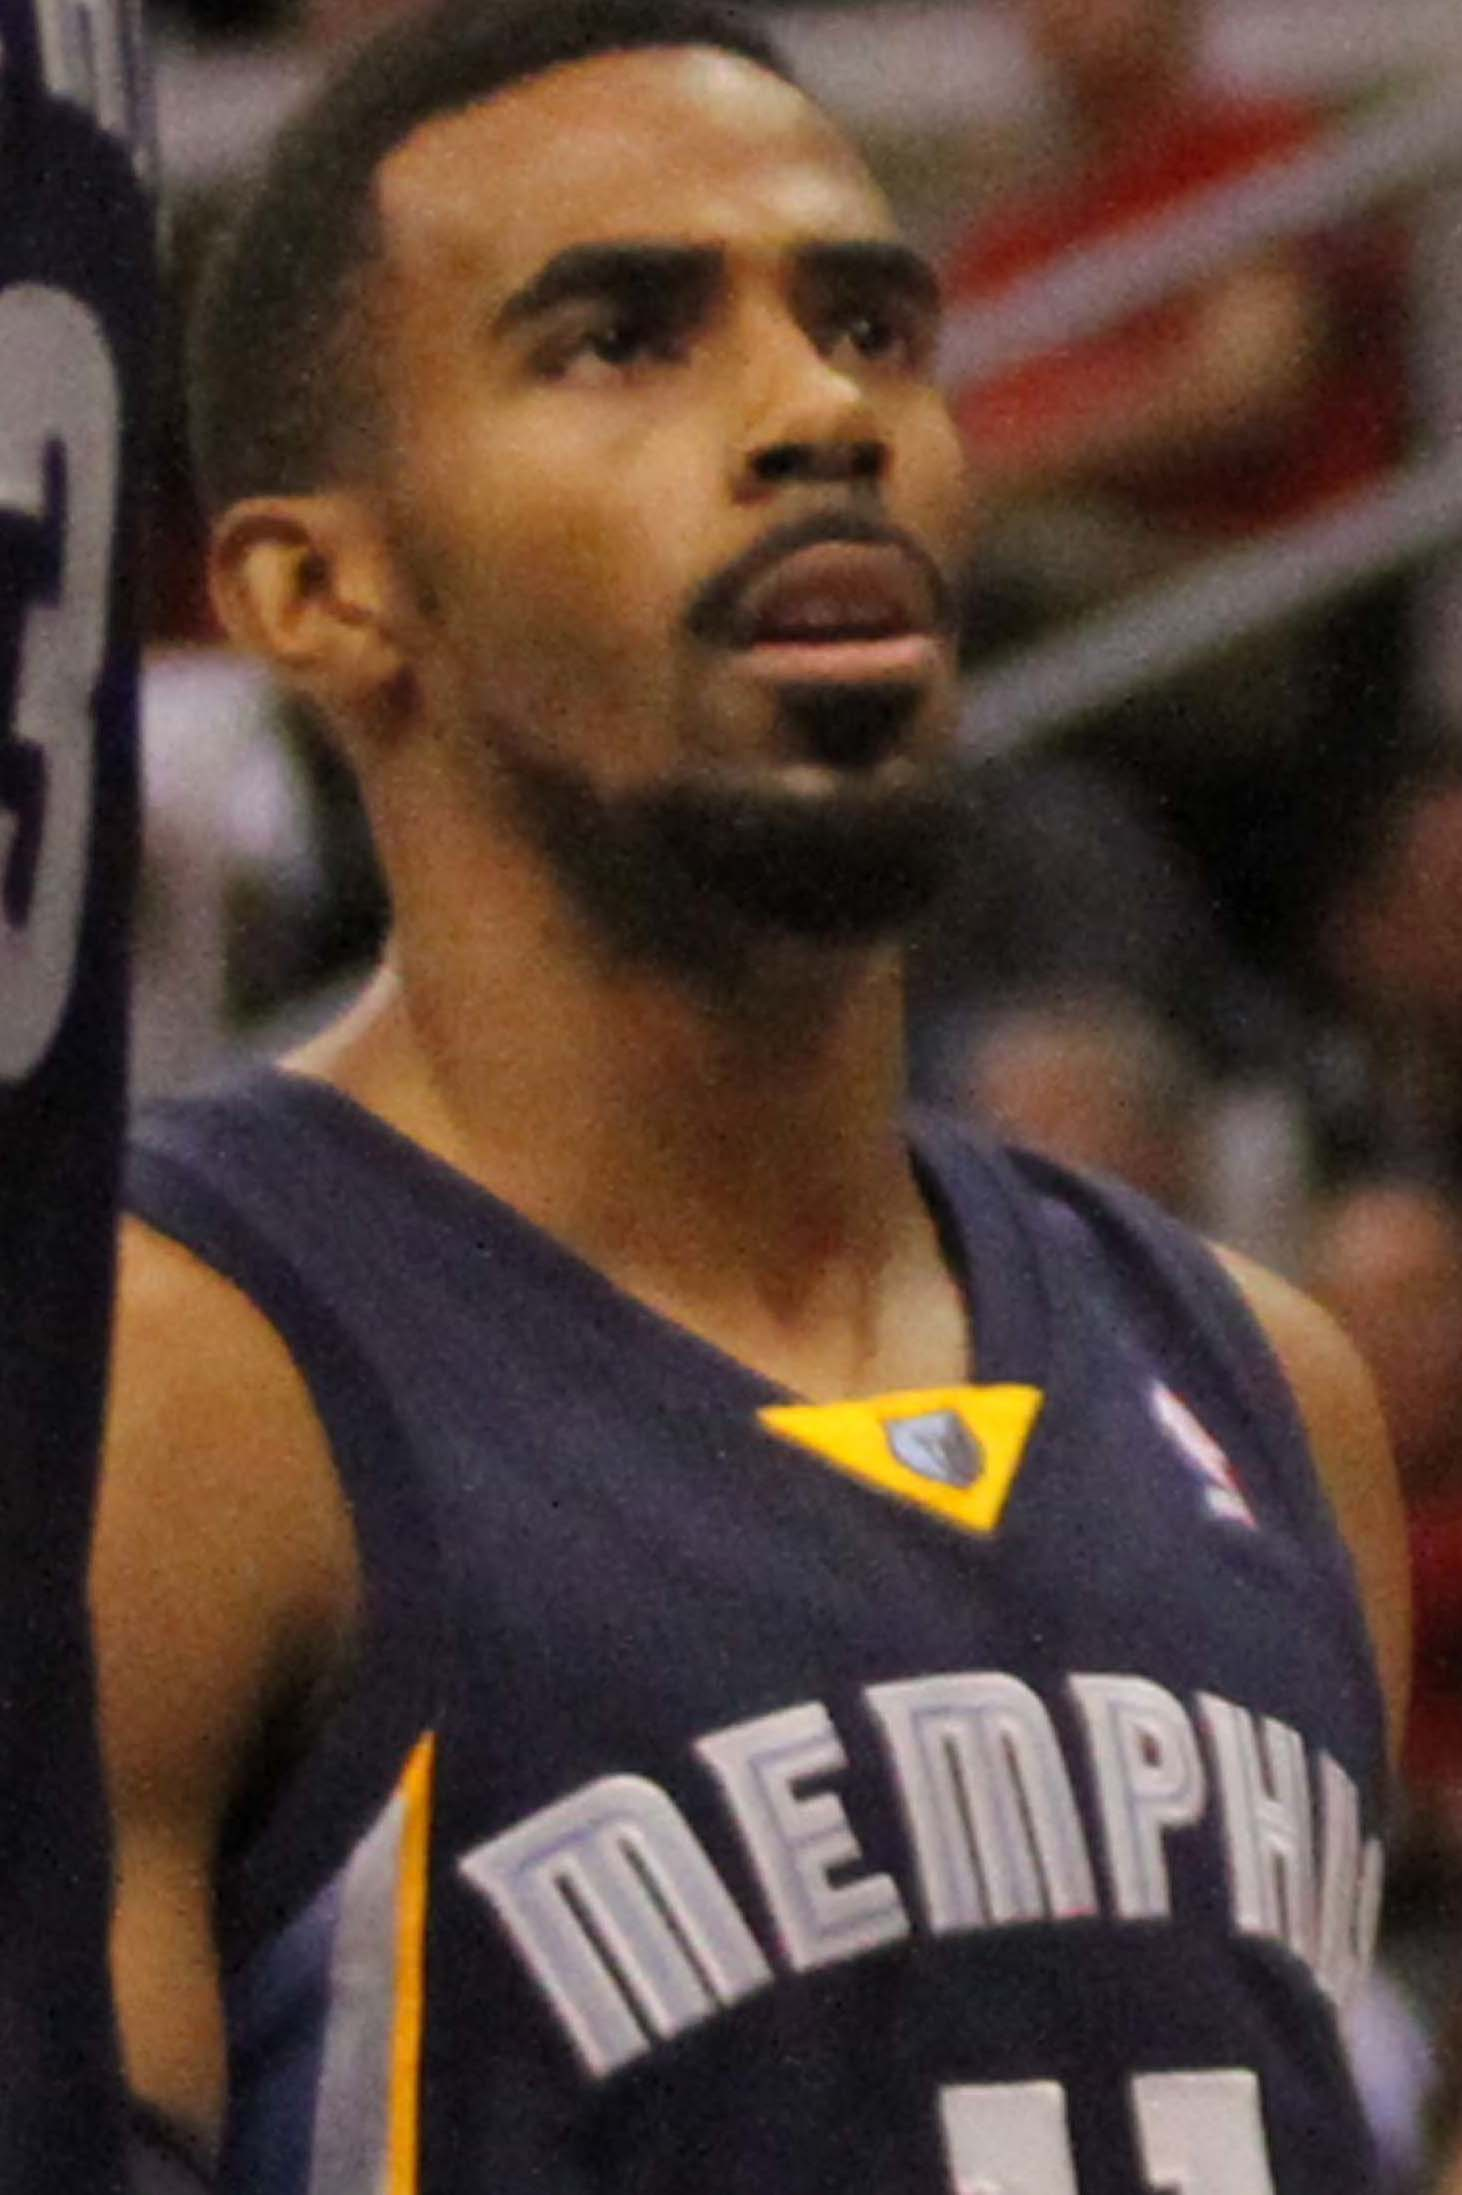 The 31-year old son of father Mike Conley, Sr. and mother(?) Mike Conley in 2018 photo. Mike Conley earned a  million dollar salary - leaving the net worth at 2 million in 2018